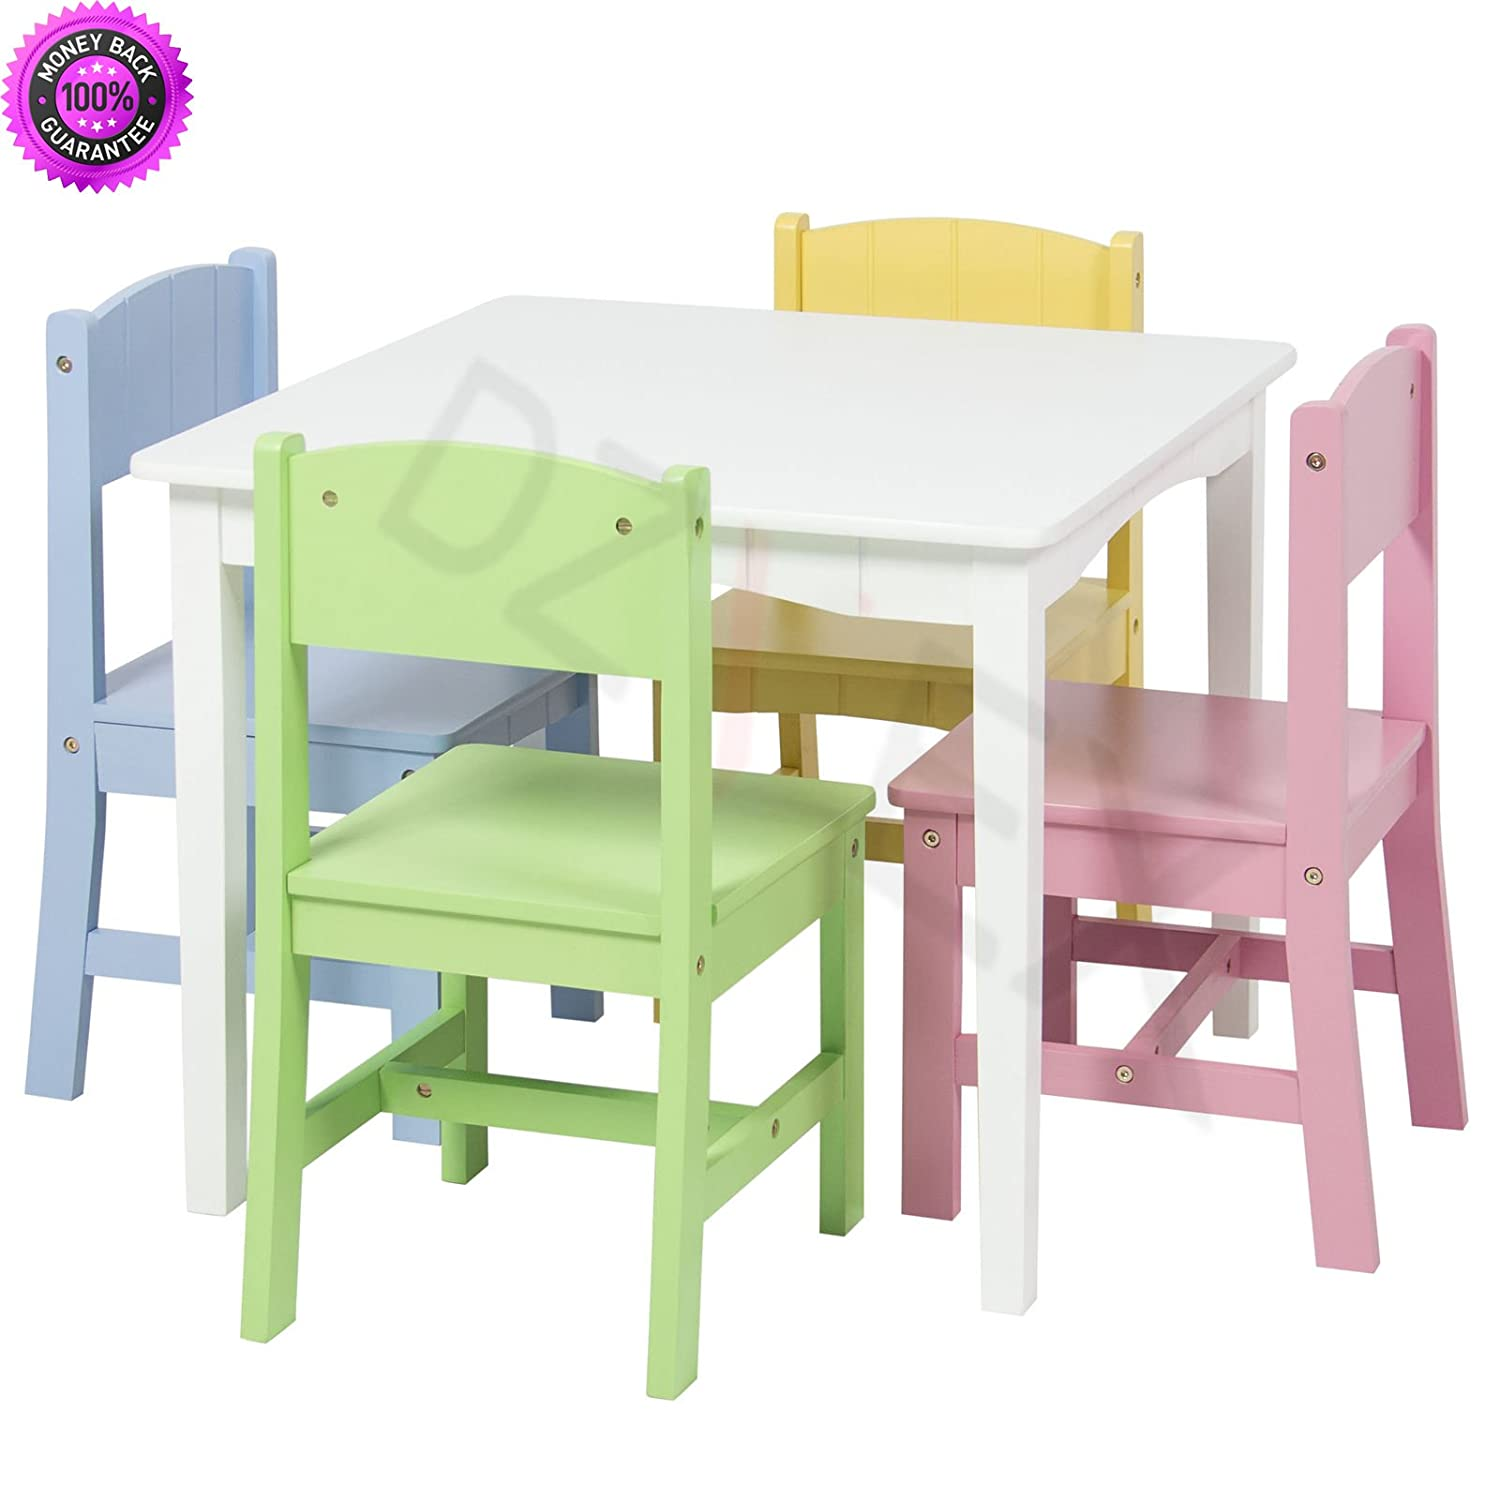 Amazoncom Dzvex Wooden Kids Table And 4 Chairs Set Furniture